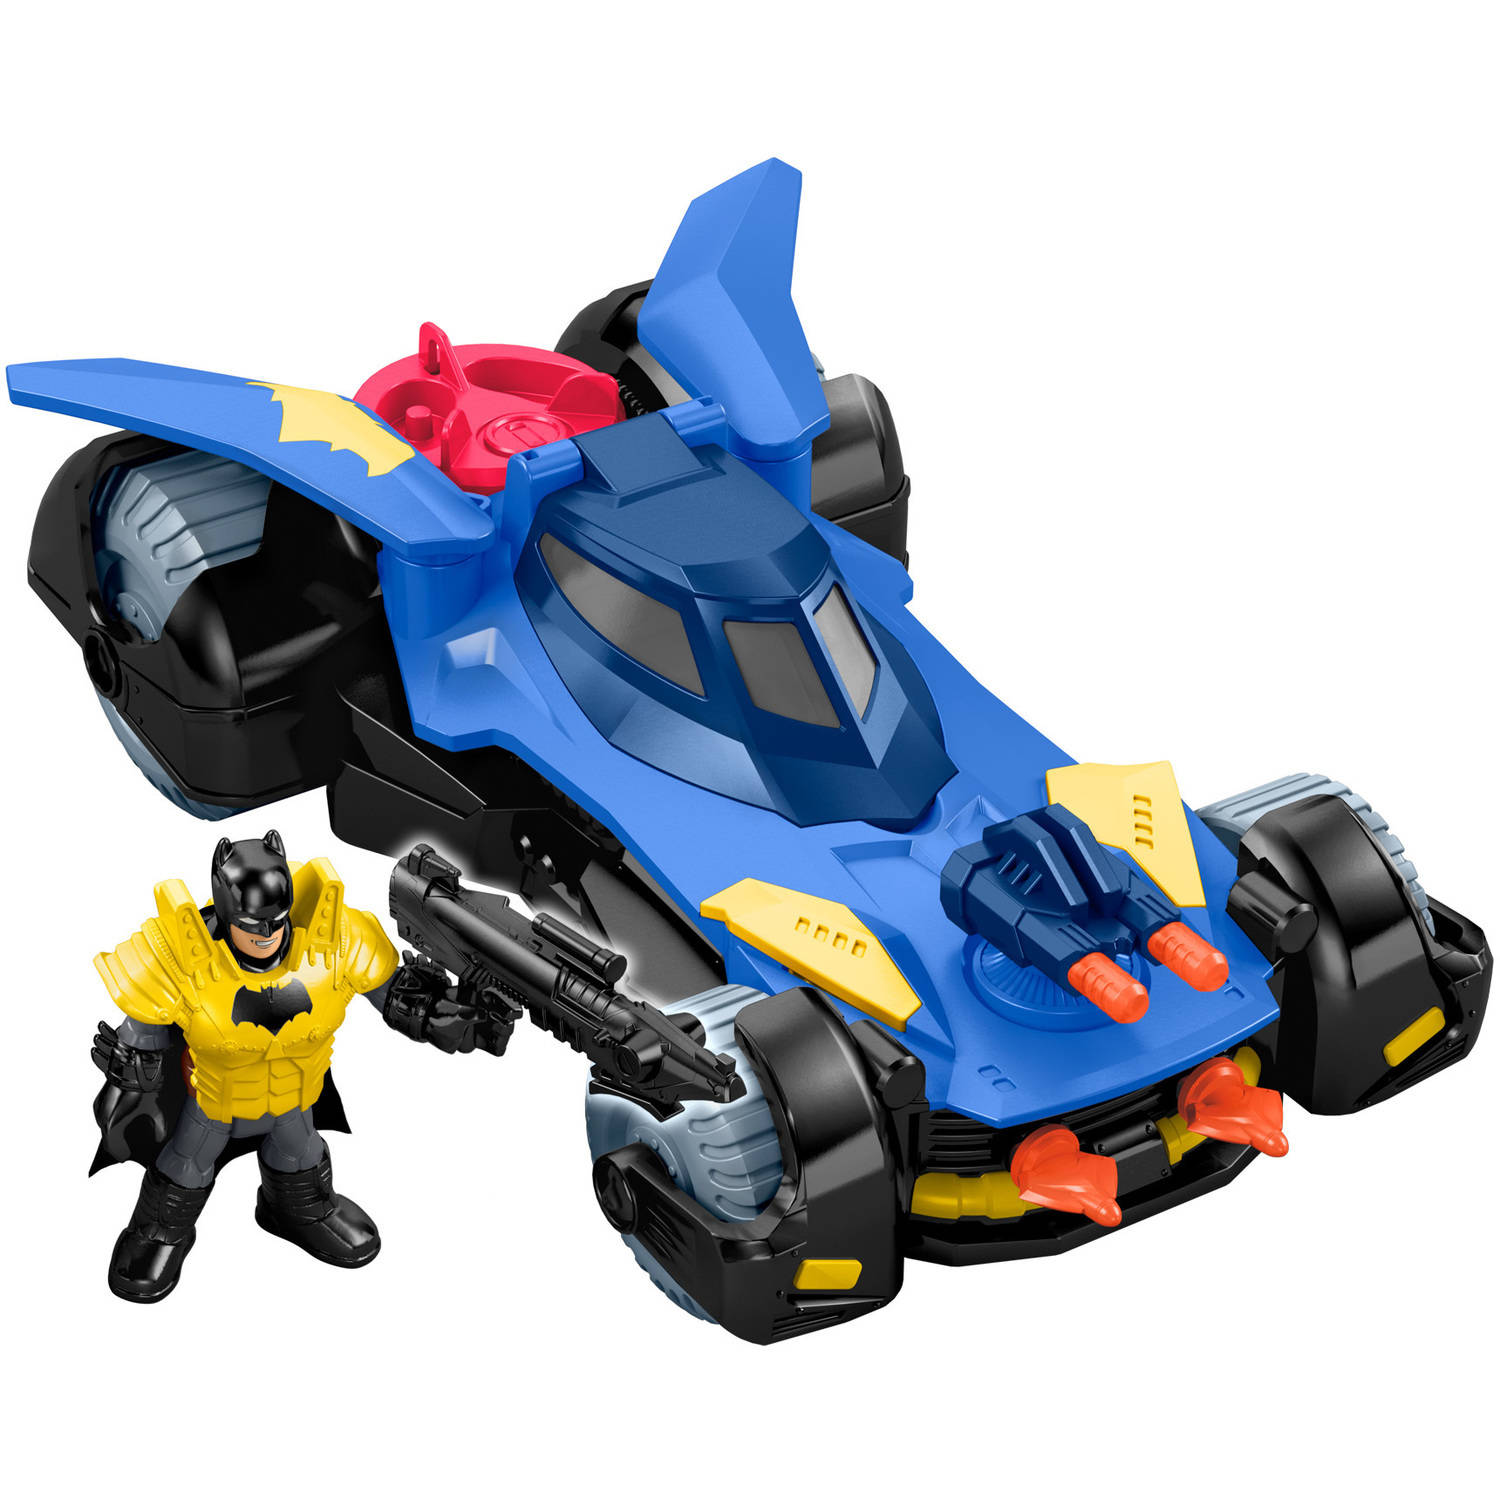 Fisher-Price Imaginext DC Super Friends Deluxe Batmobile Vehicle